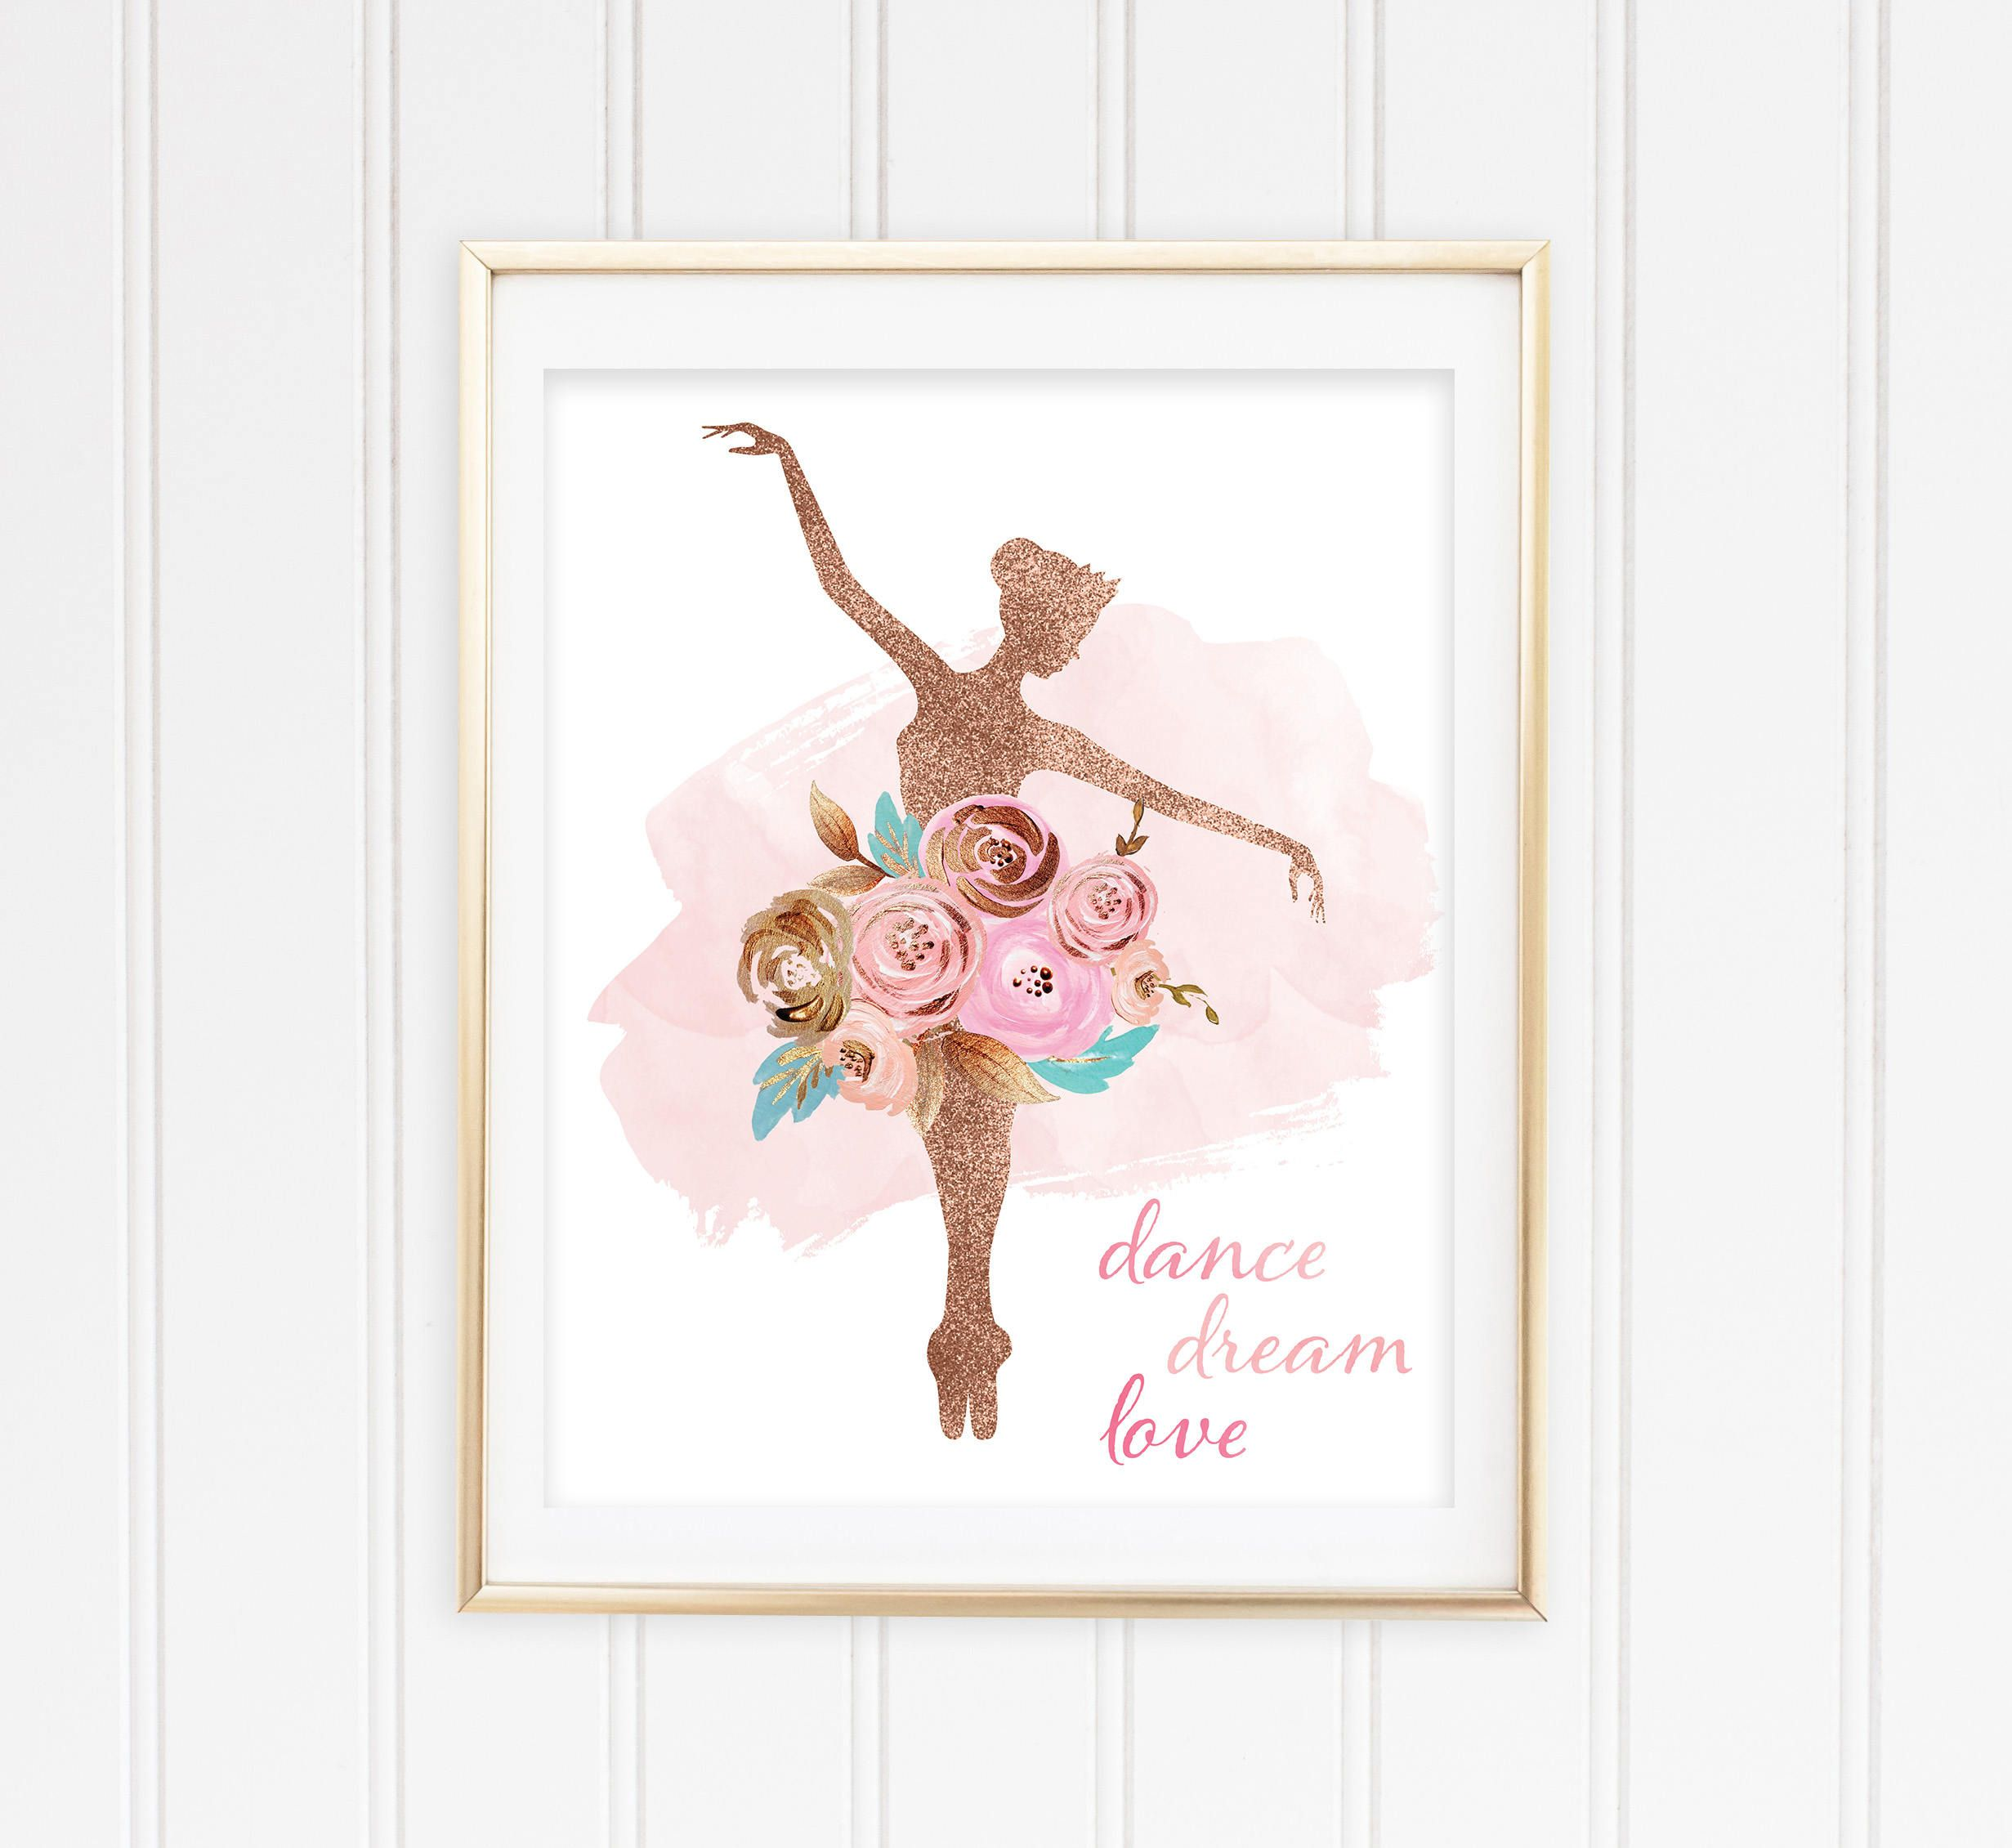 Ballerina gift girl room decor ballet print printable art dancer gift wall art print dance quote girls decor girl wall art by pinkpompomkids